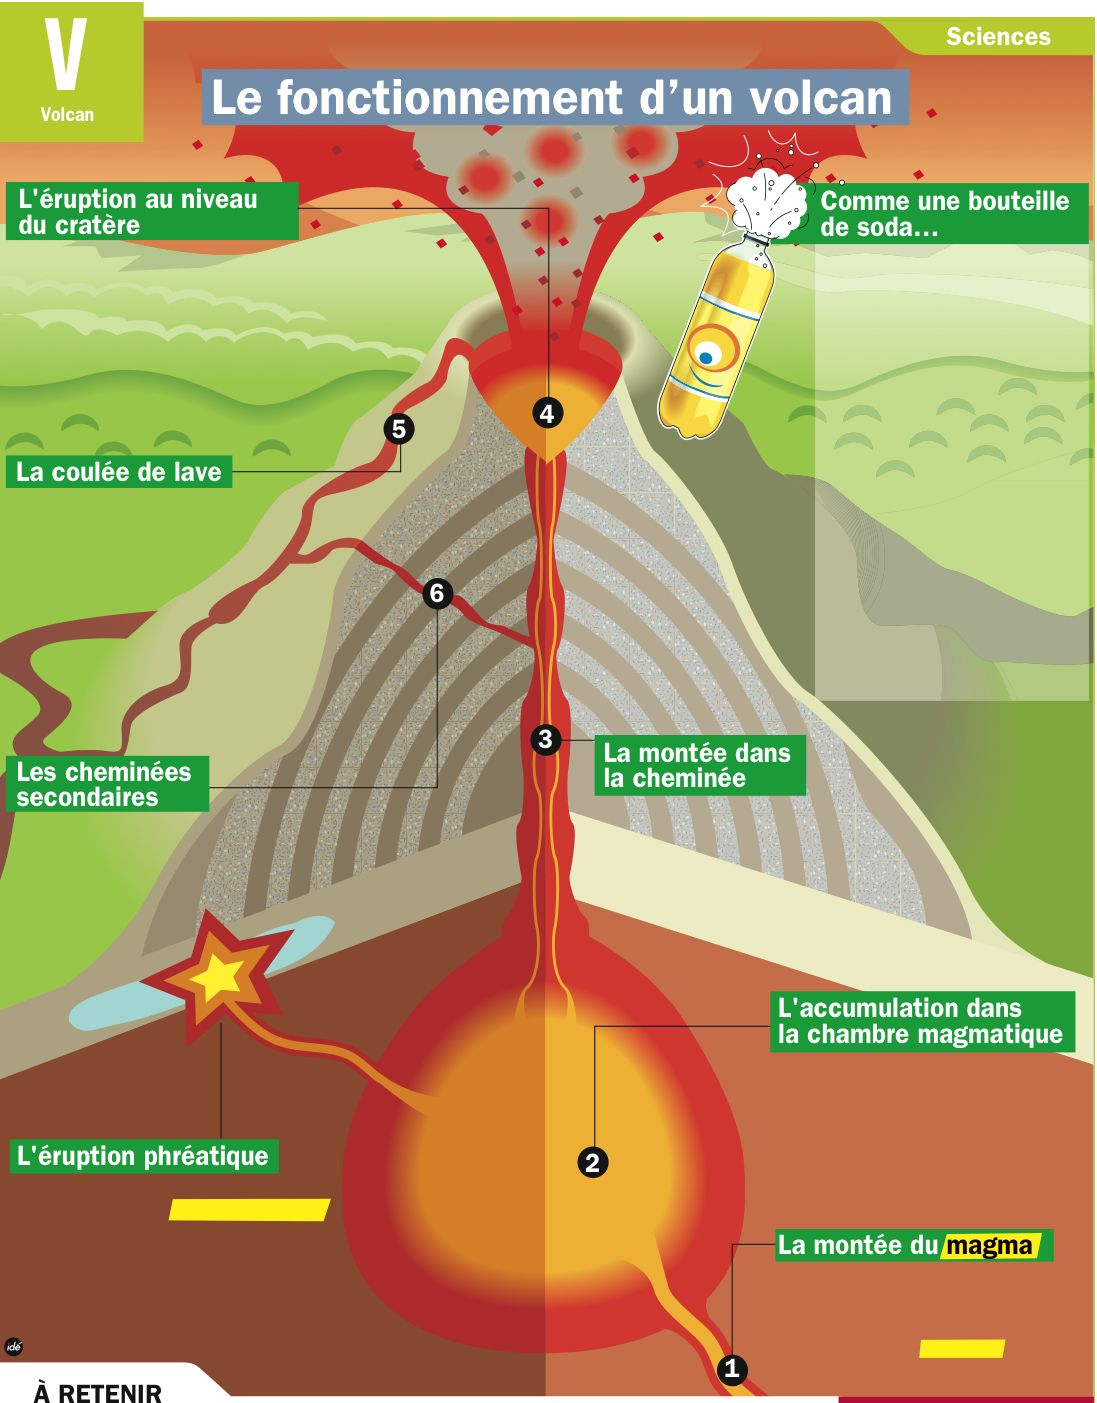 1 un volcan na t l 39 endroit o le magma r ussit sortir for Chambre magmatique